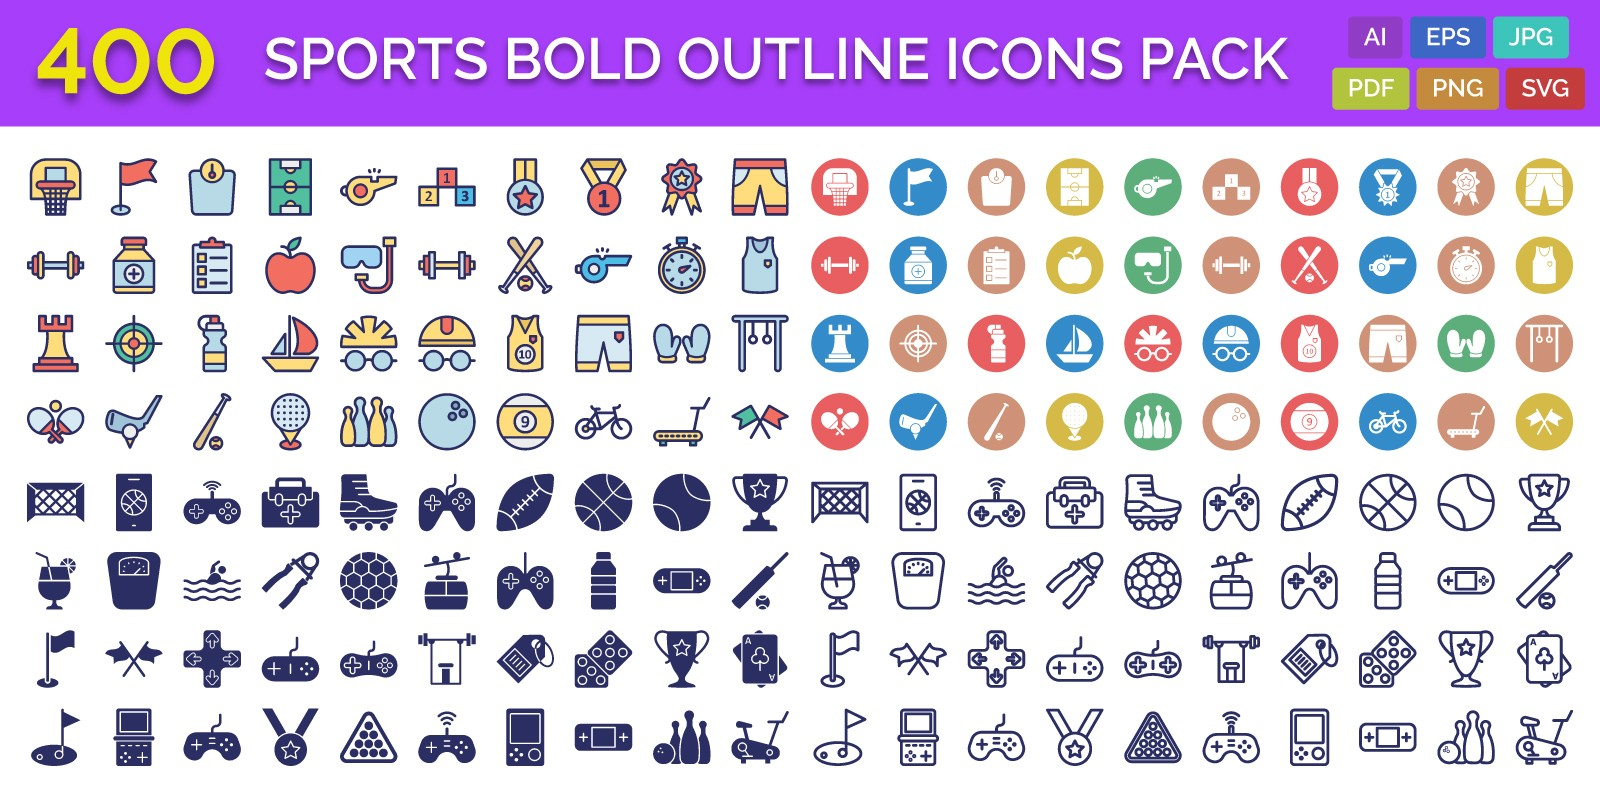 400 Sports Bold Outline Vector Icons Pack